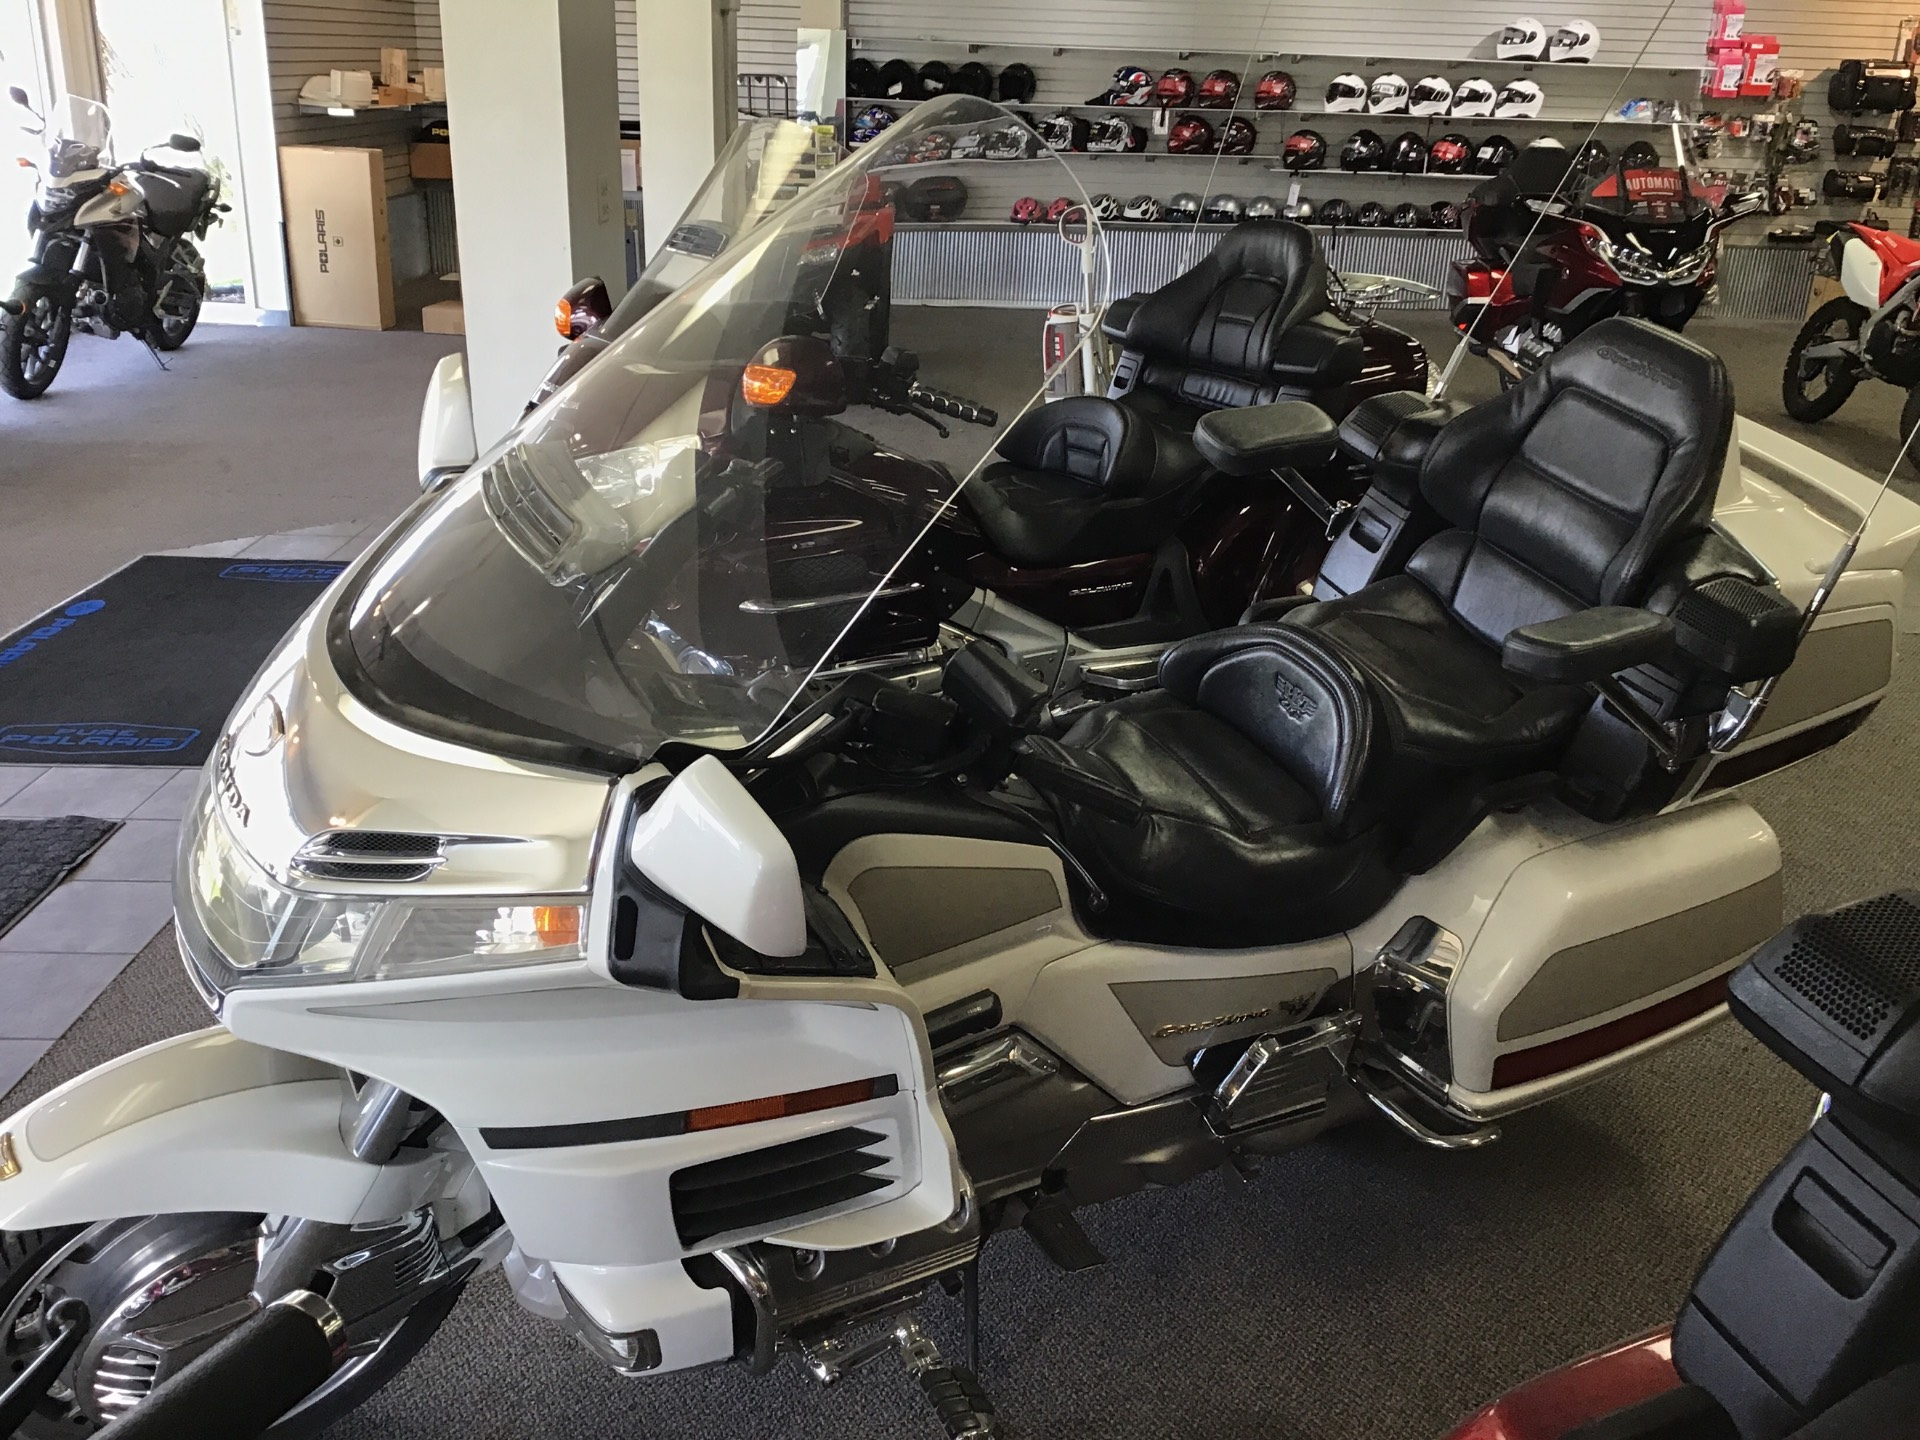 1999 Honda Goldwing GL1500 in Sterling, Illinois - Photo 2